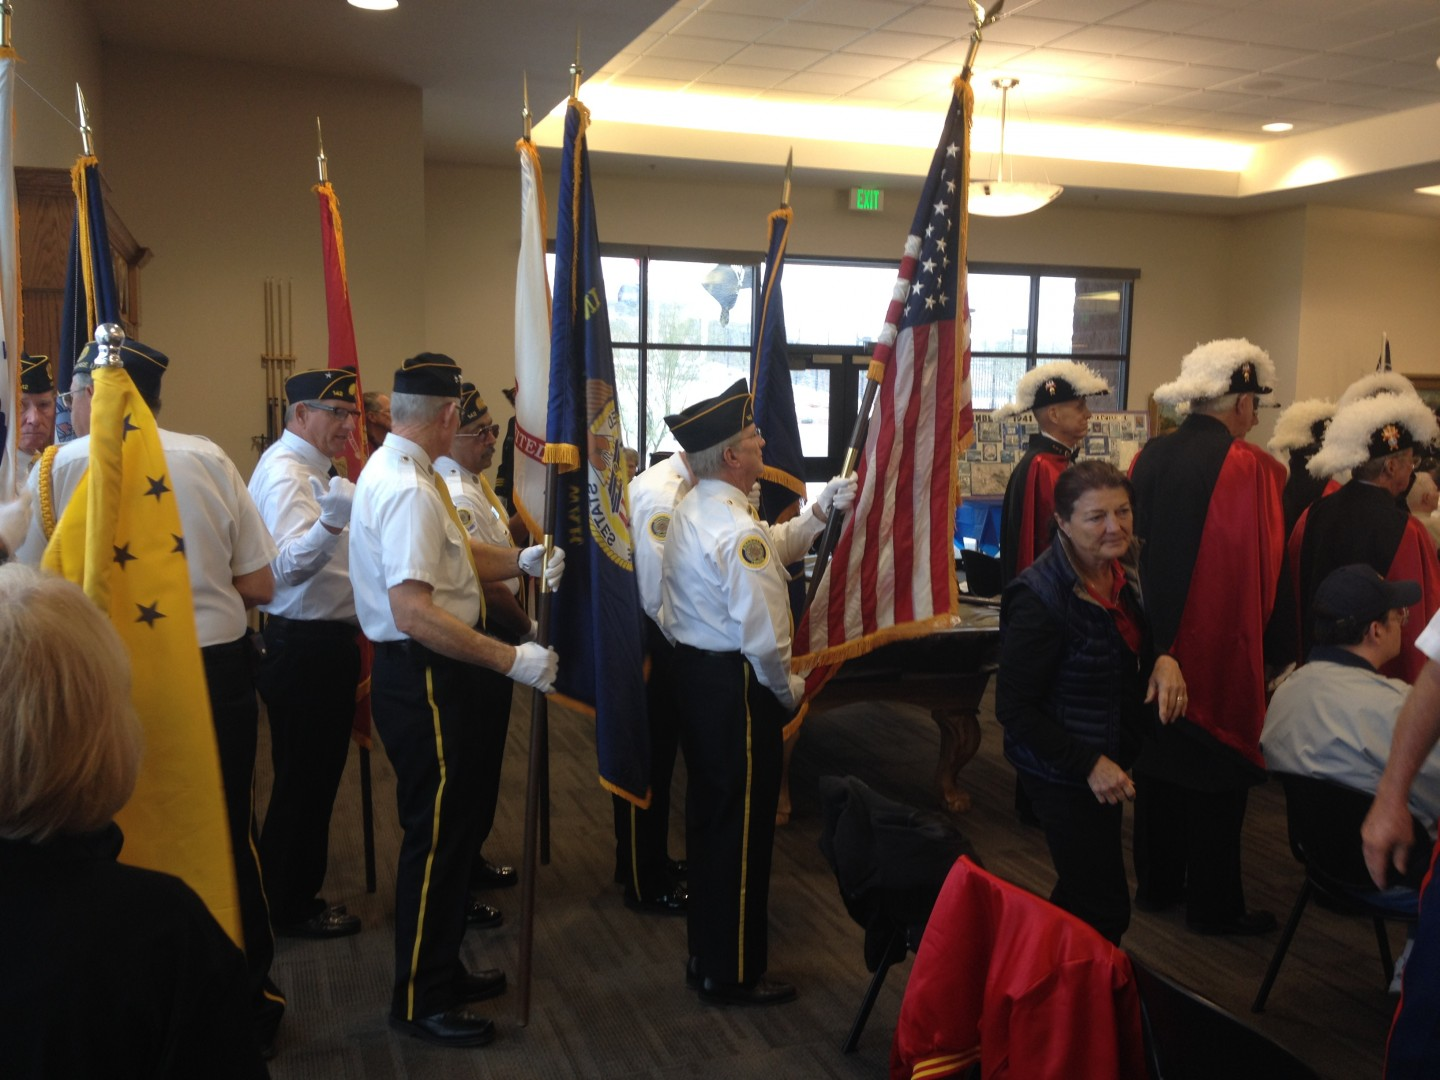 """Memories from """"The Day of Infamy"""" at the Southern Utah Veterans Home's Pearl Harbor survivors ceremony, Ivins, Utah, Dec. 8, 2013 